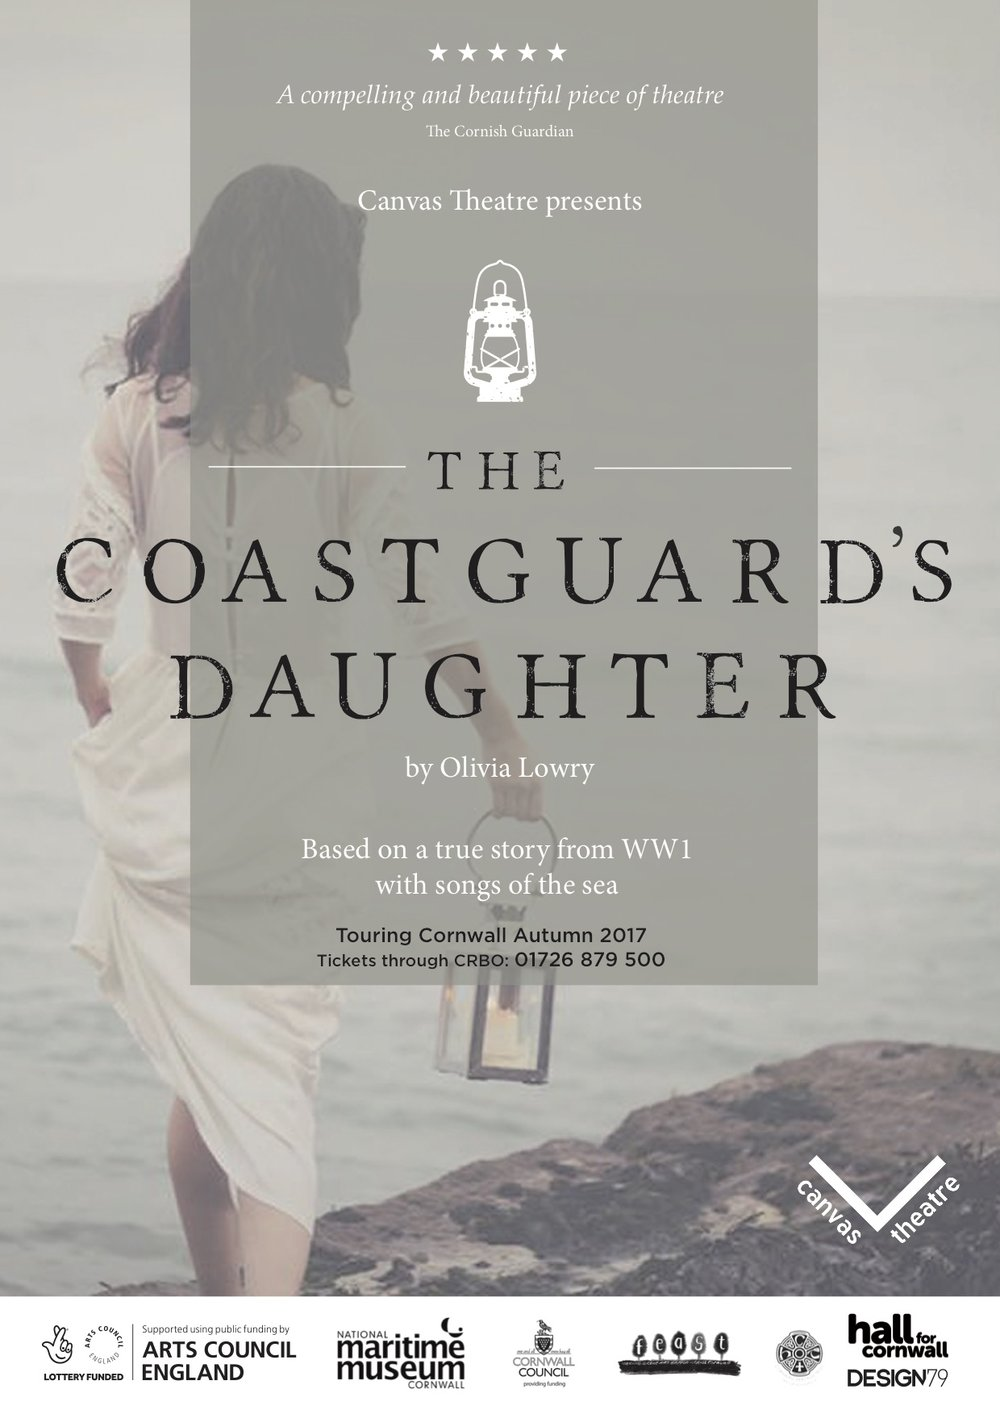 The_Coastguards_Daughter_digital.jpg